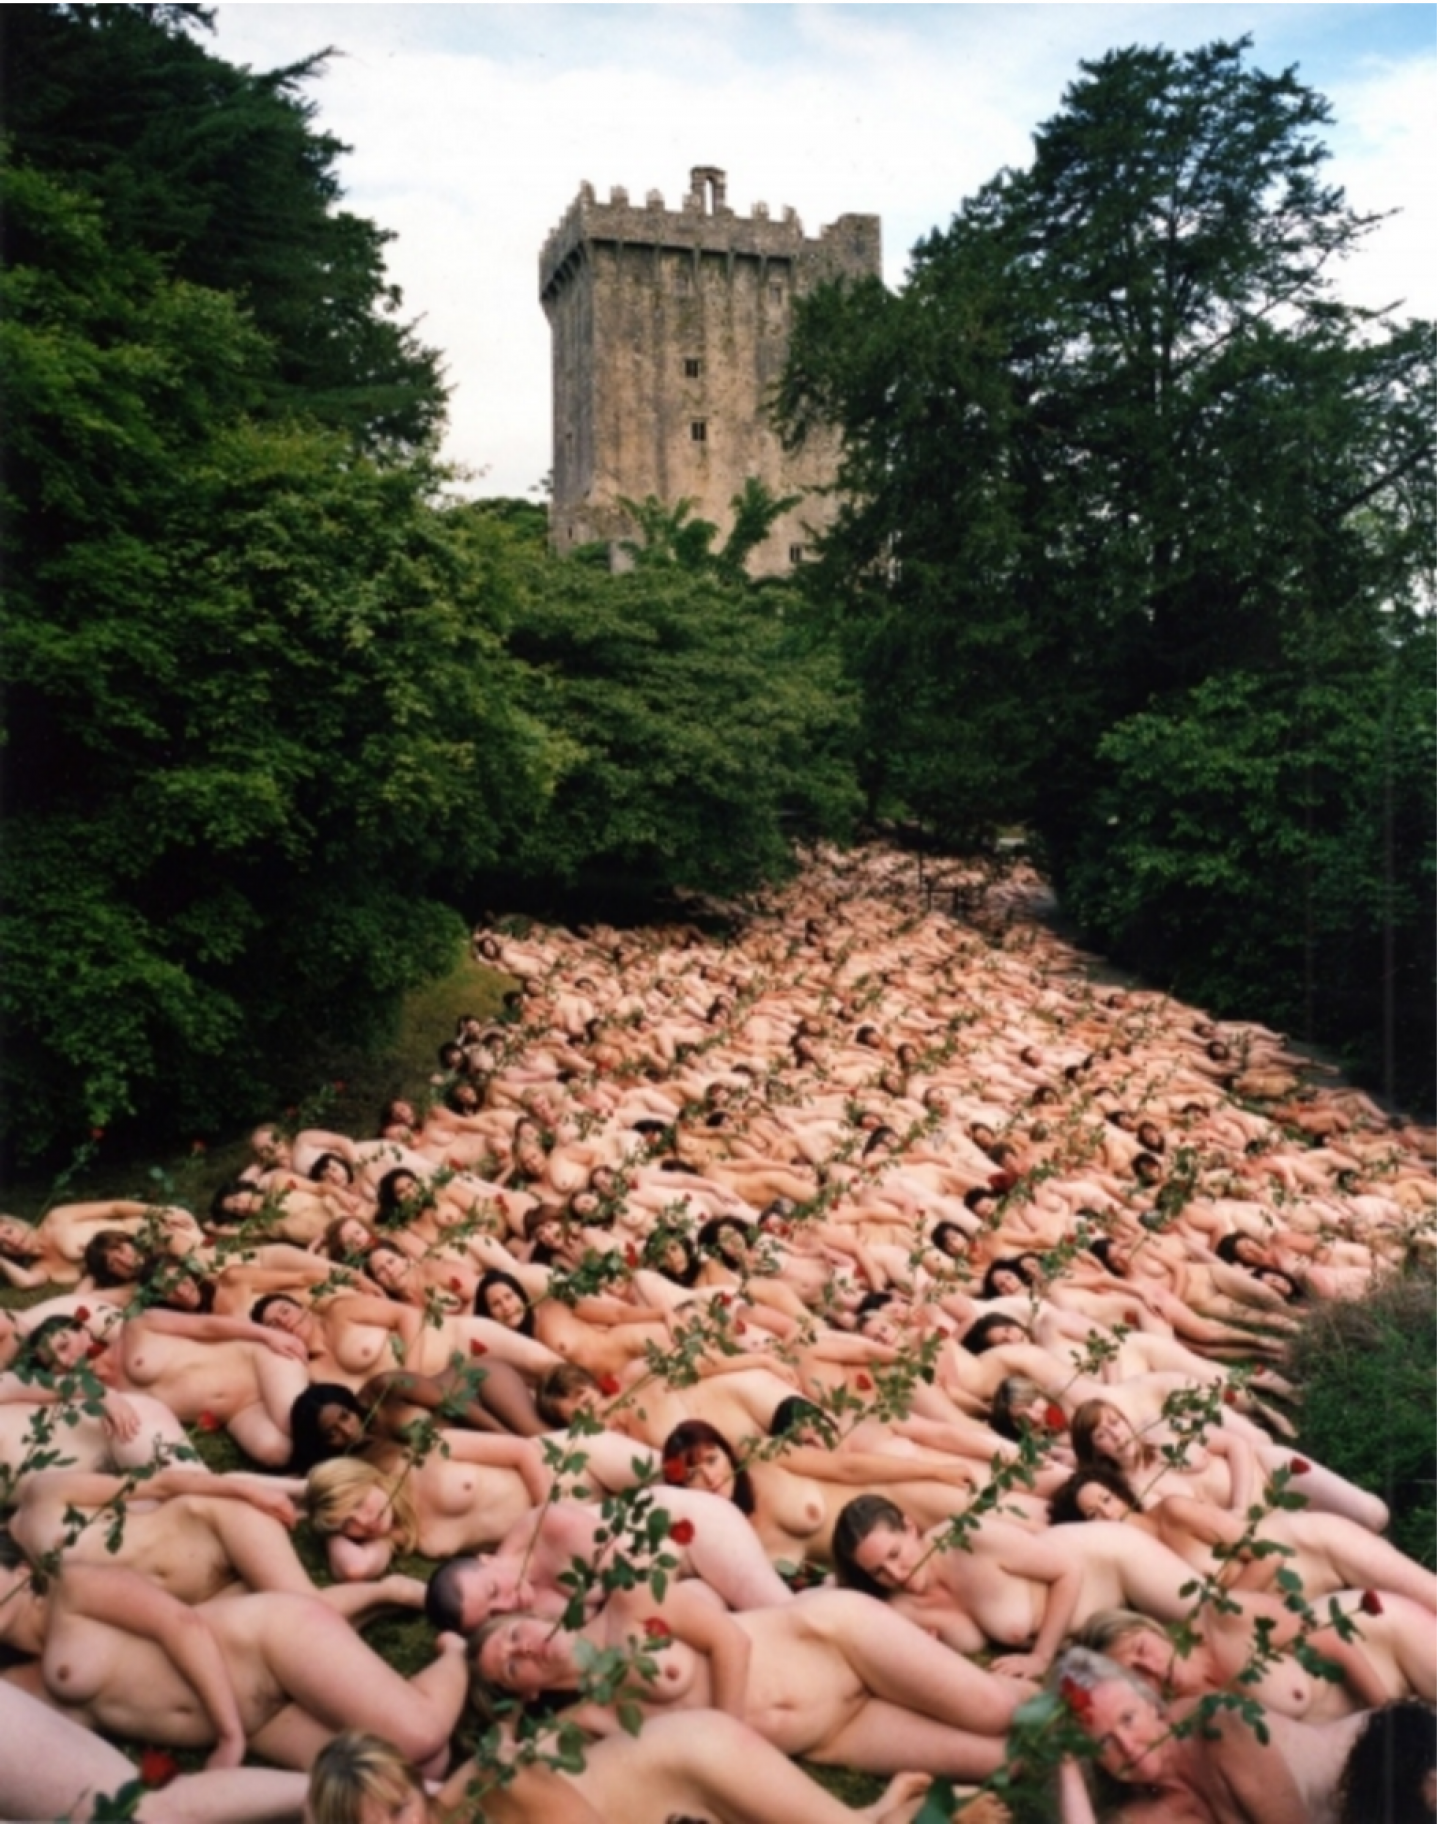 art_spencertunick_adornment_10